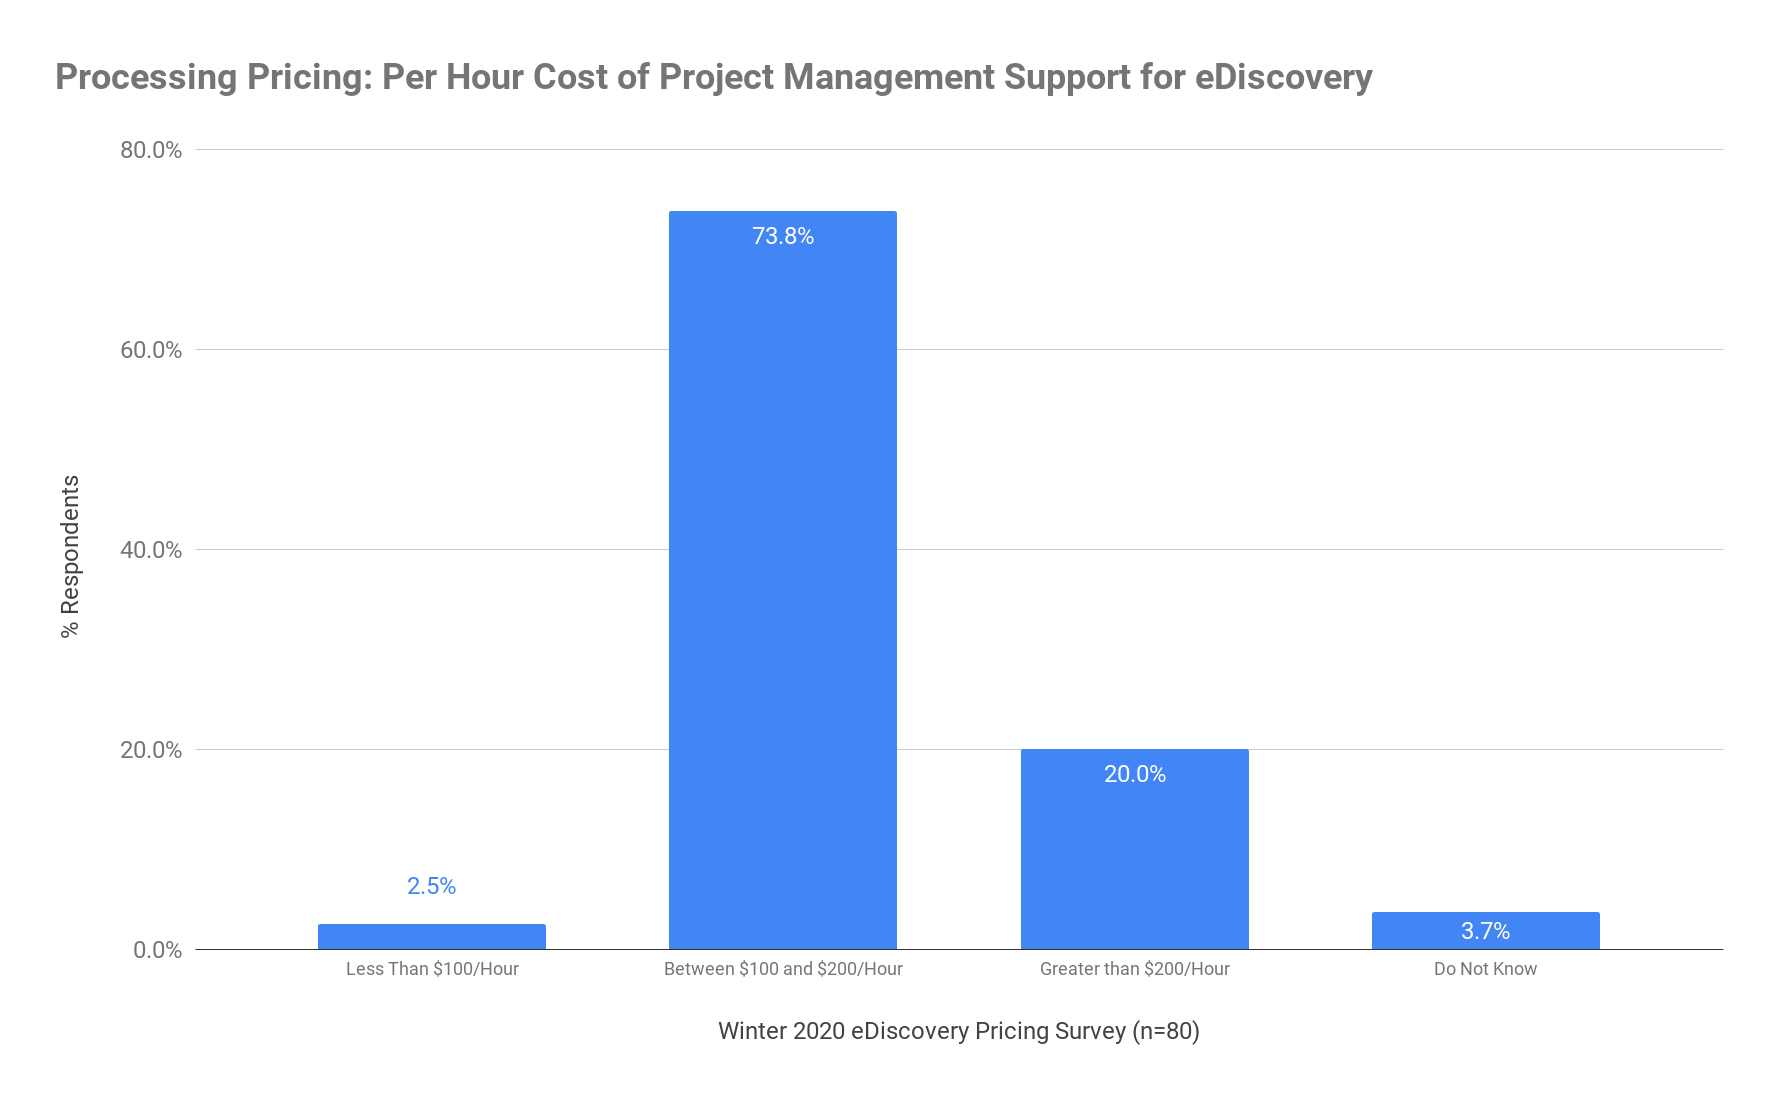 Processing Pricing - Per Hour Cost of Project Management Support for eDiscovery - Winter 2020